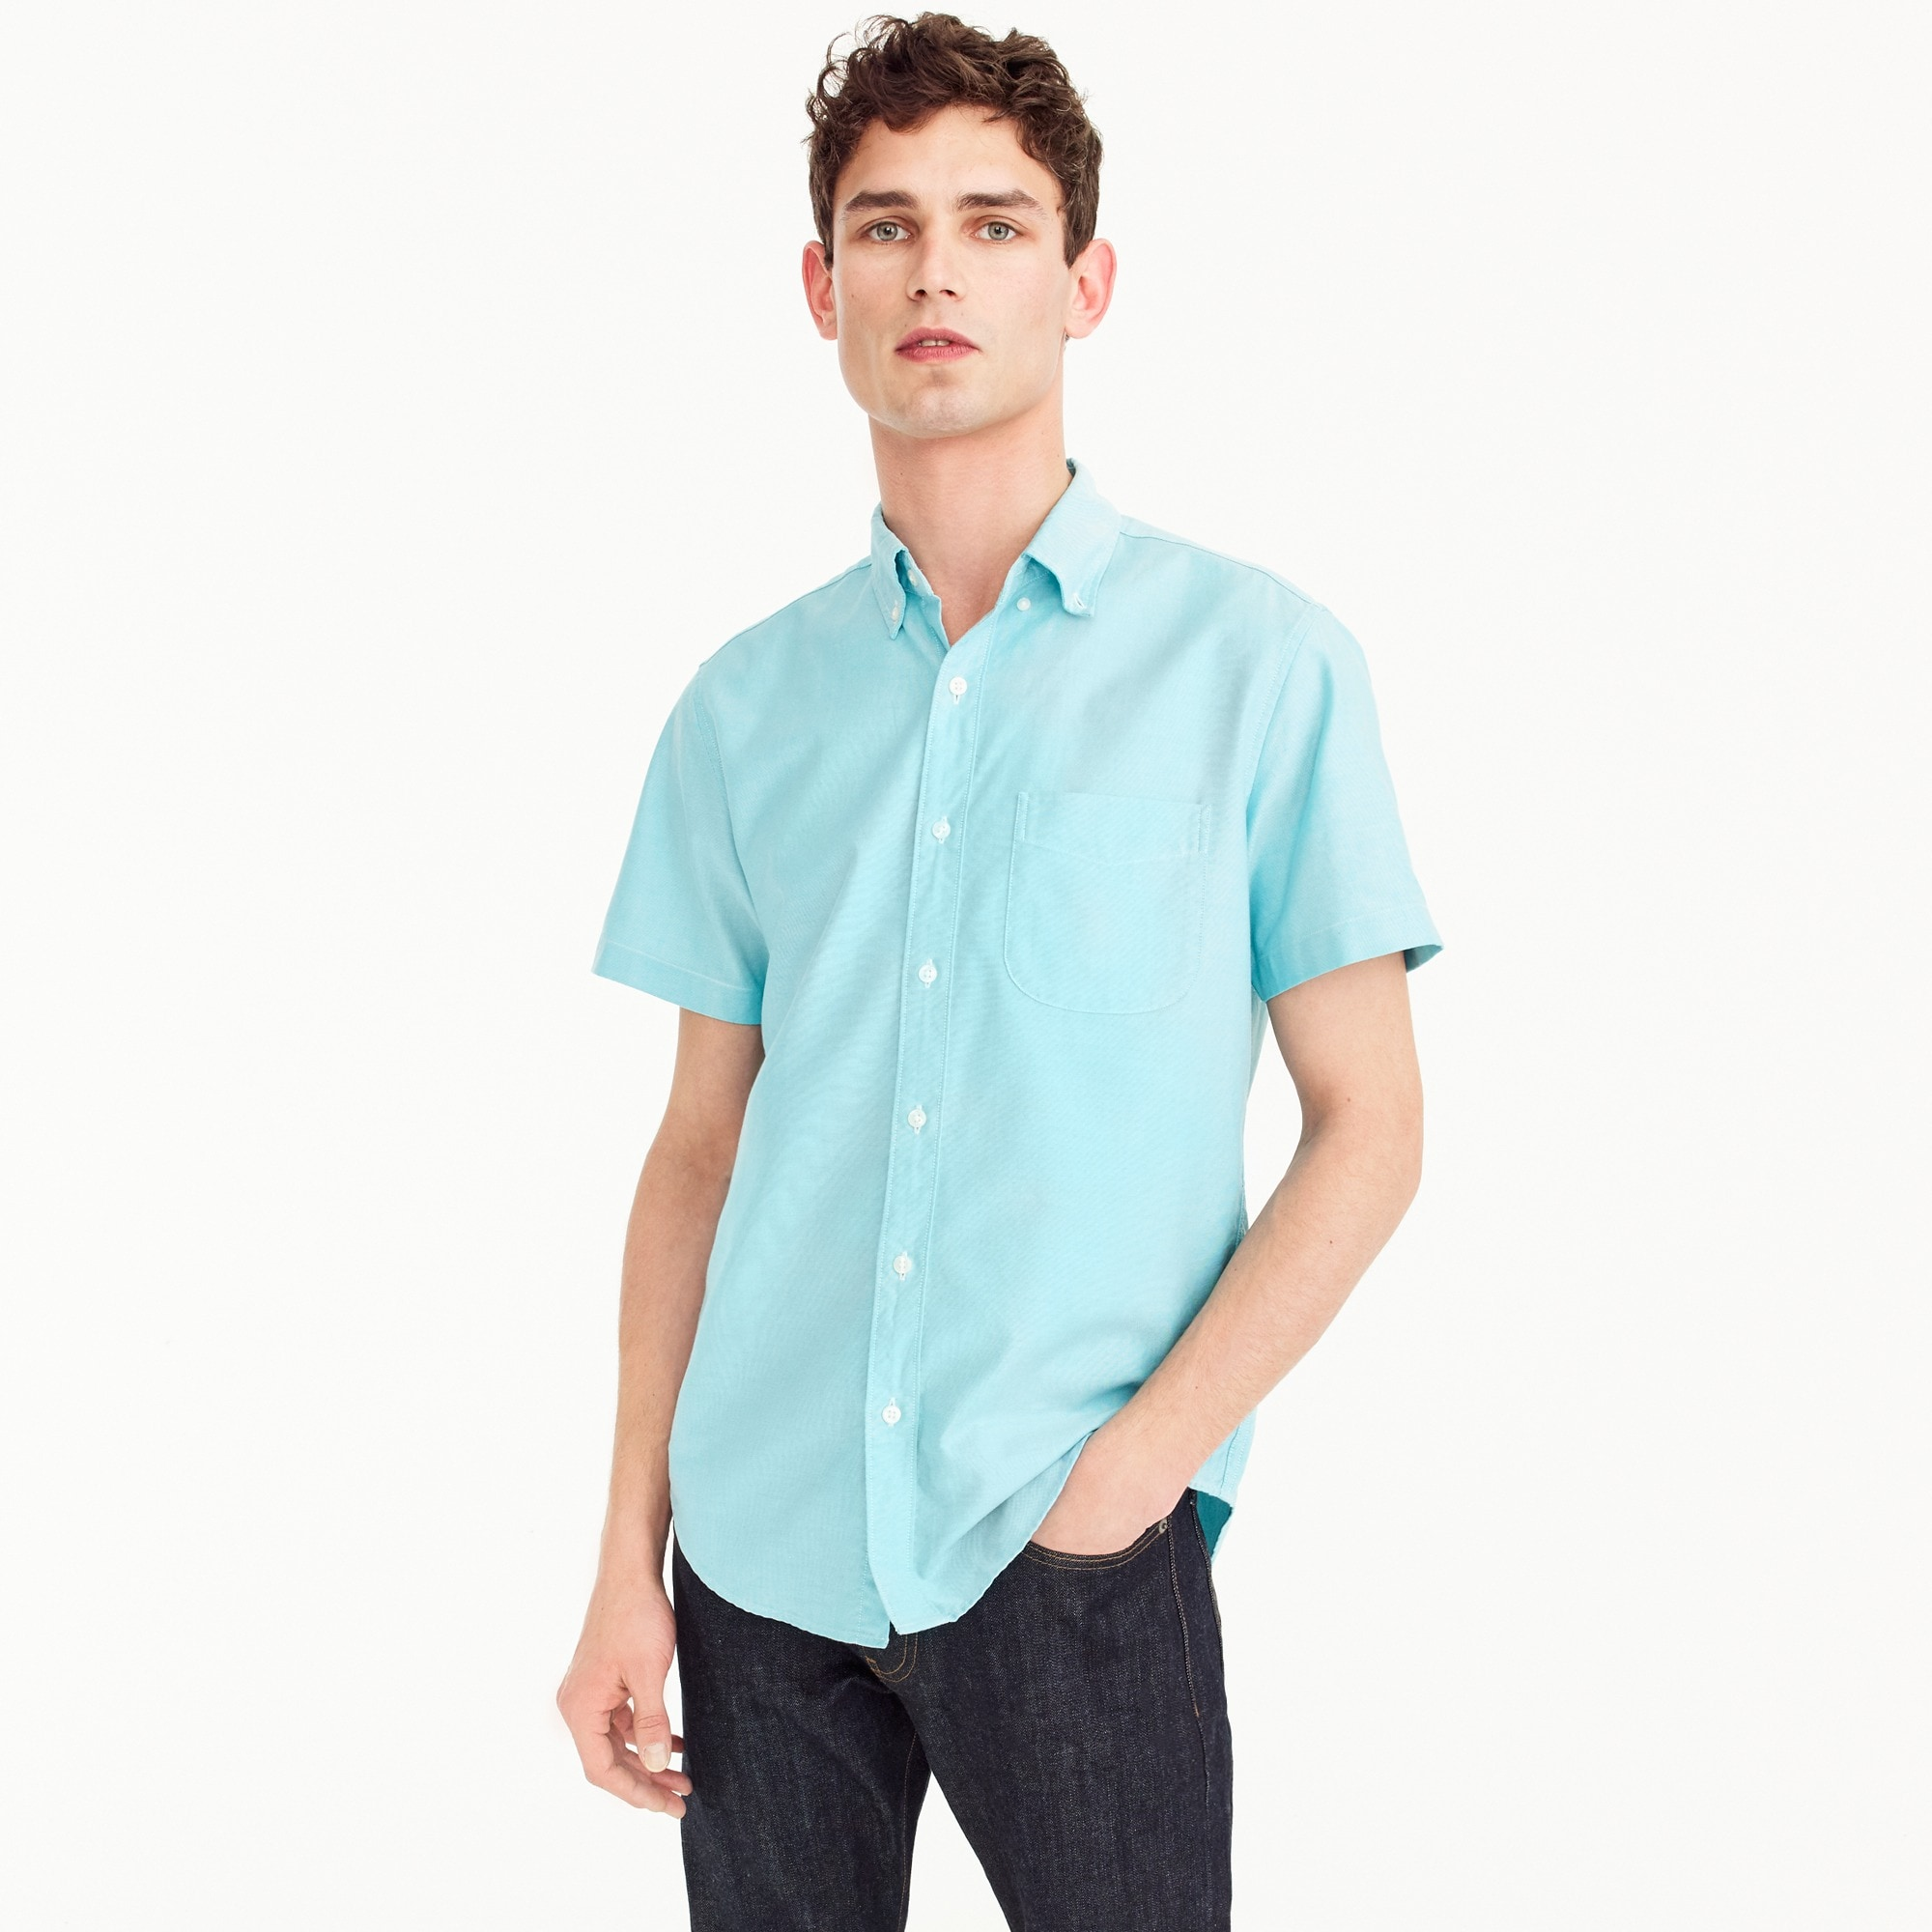 Short-sleeve stretch American Pima oxford shirt in turquoise men new arrivals c